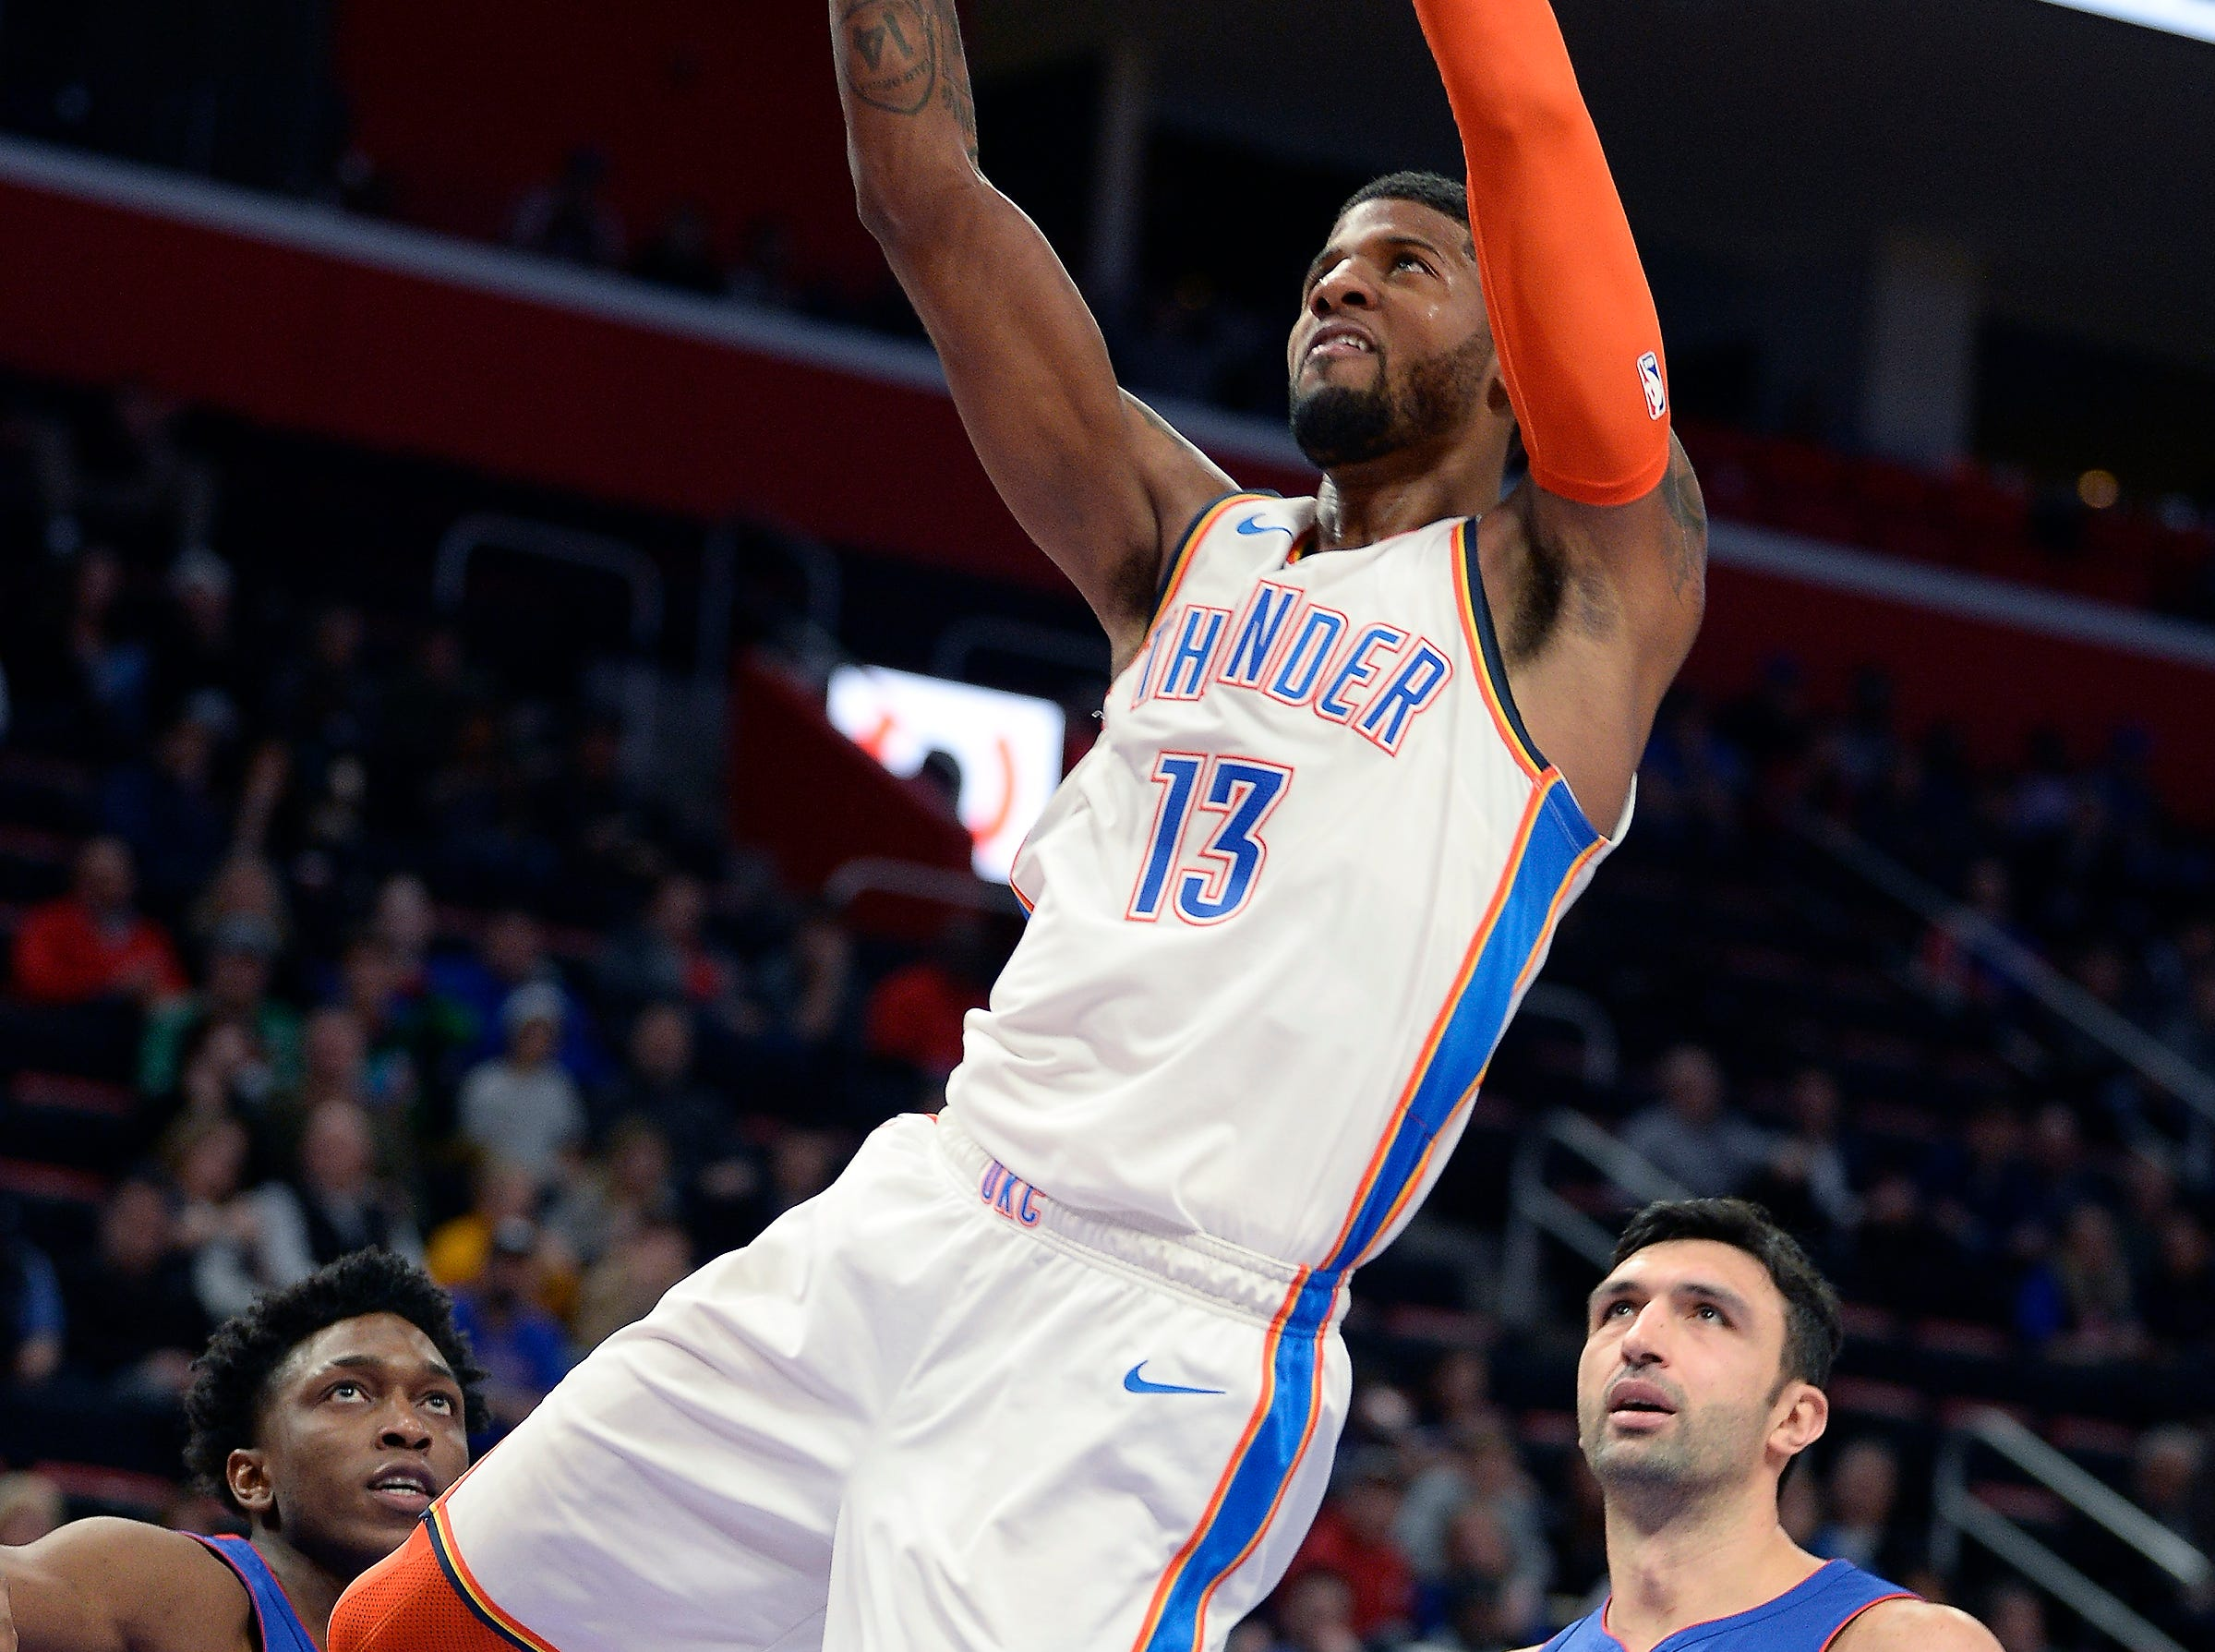 Thunder's Paul George dunks over Pistons' l-r, Stanley Johnson and ZaZa Pachulia in the third quarter. George had 17 points and 10 rebounds.